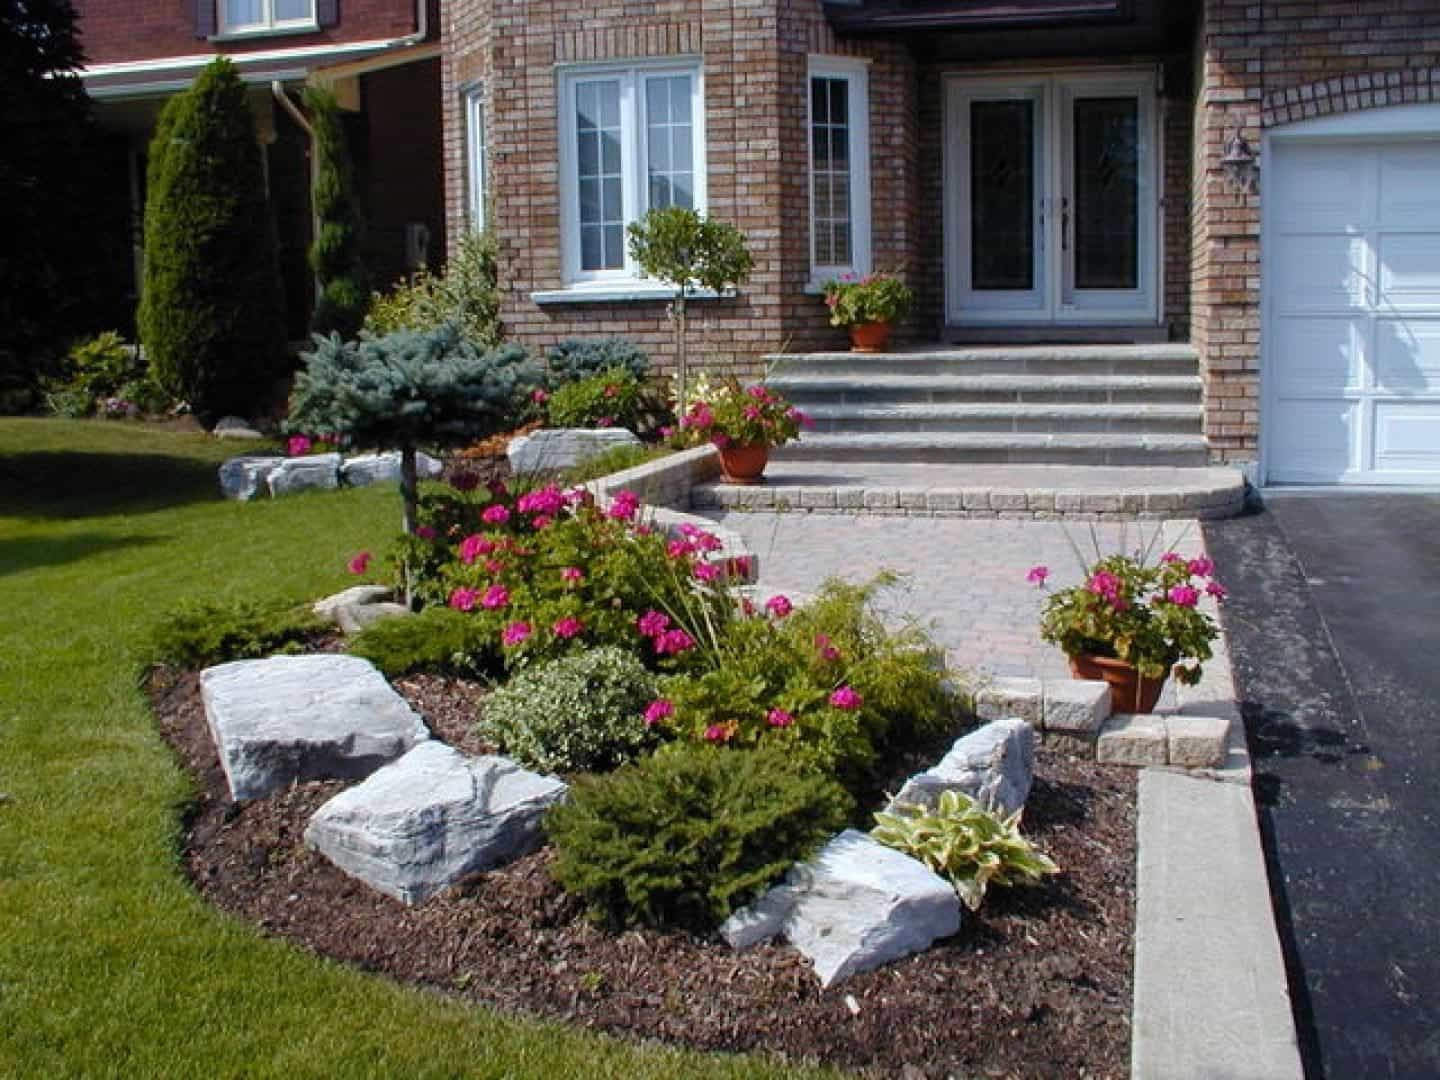 Landscape Designs For Small Yards  Small Front Yard With Boulders And Shrubs Small Front